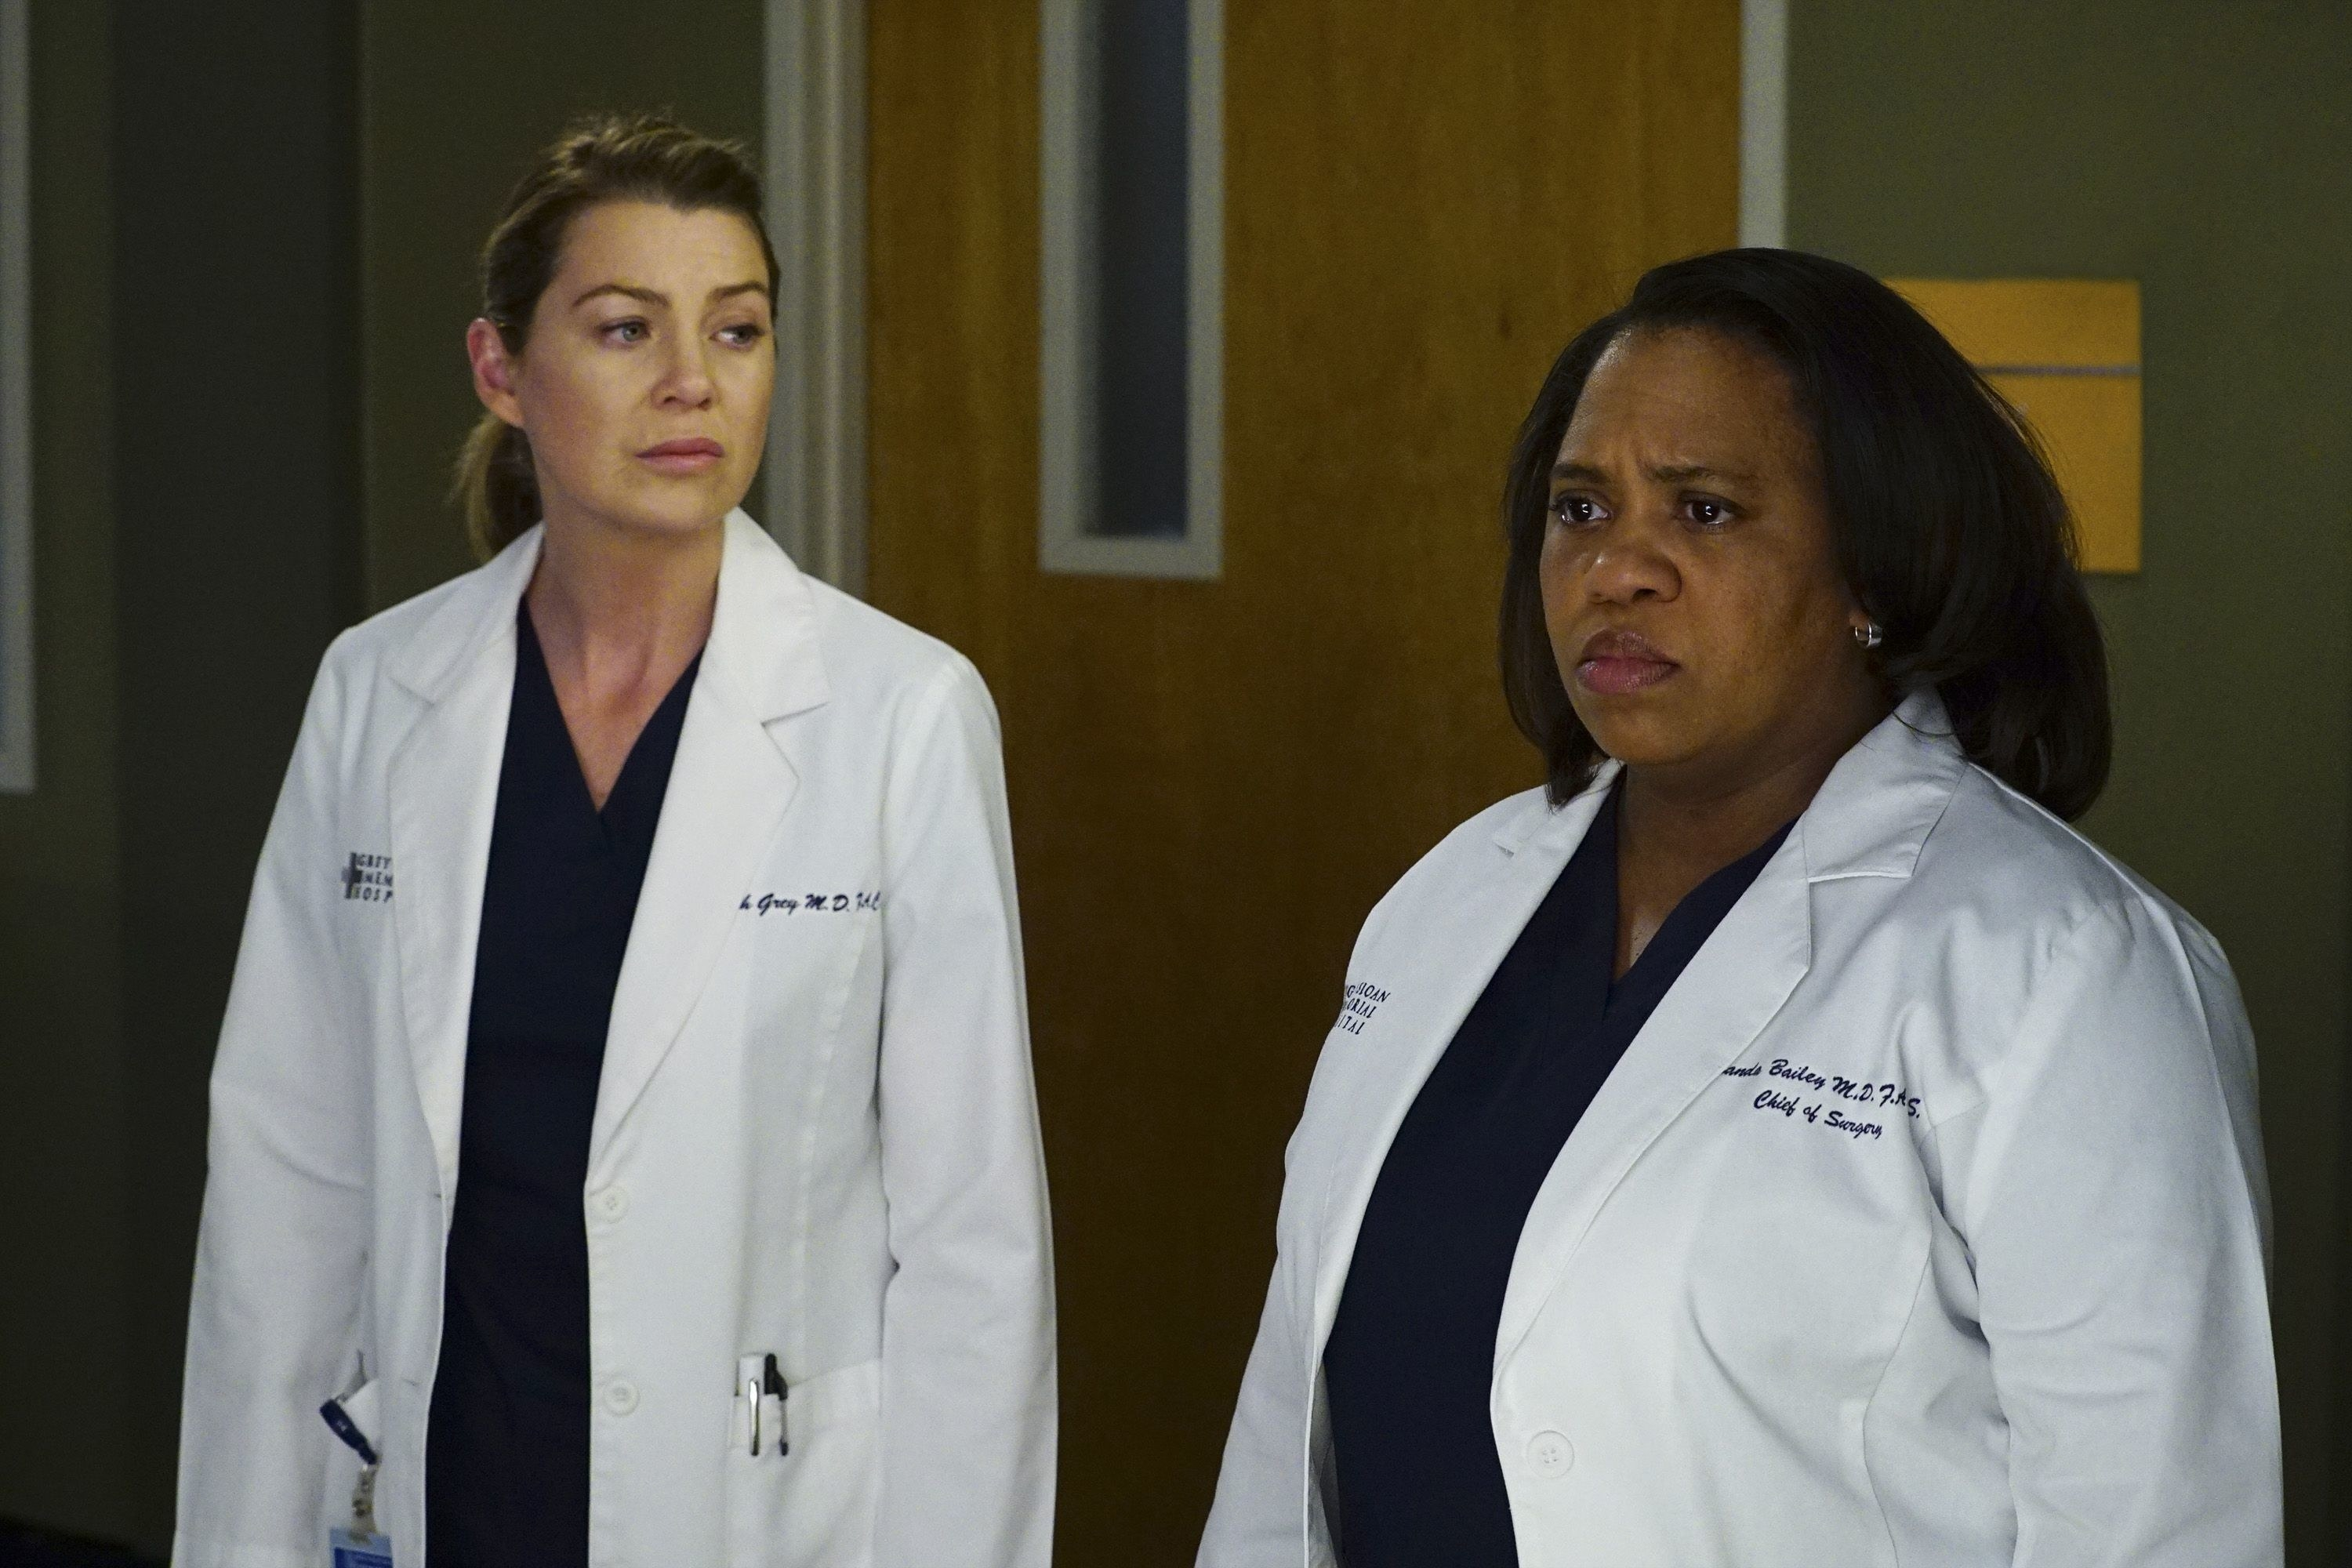 Ellen Pompeo and Chandra Wilson as Meredith and Bailey in Grey's Anatomy